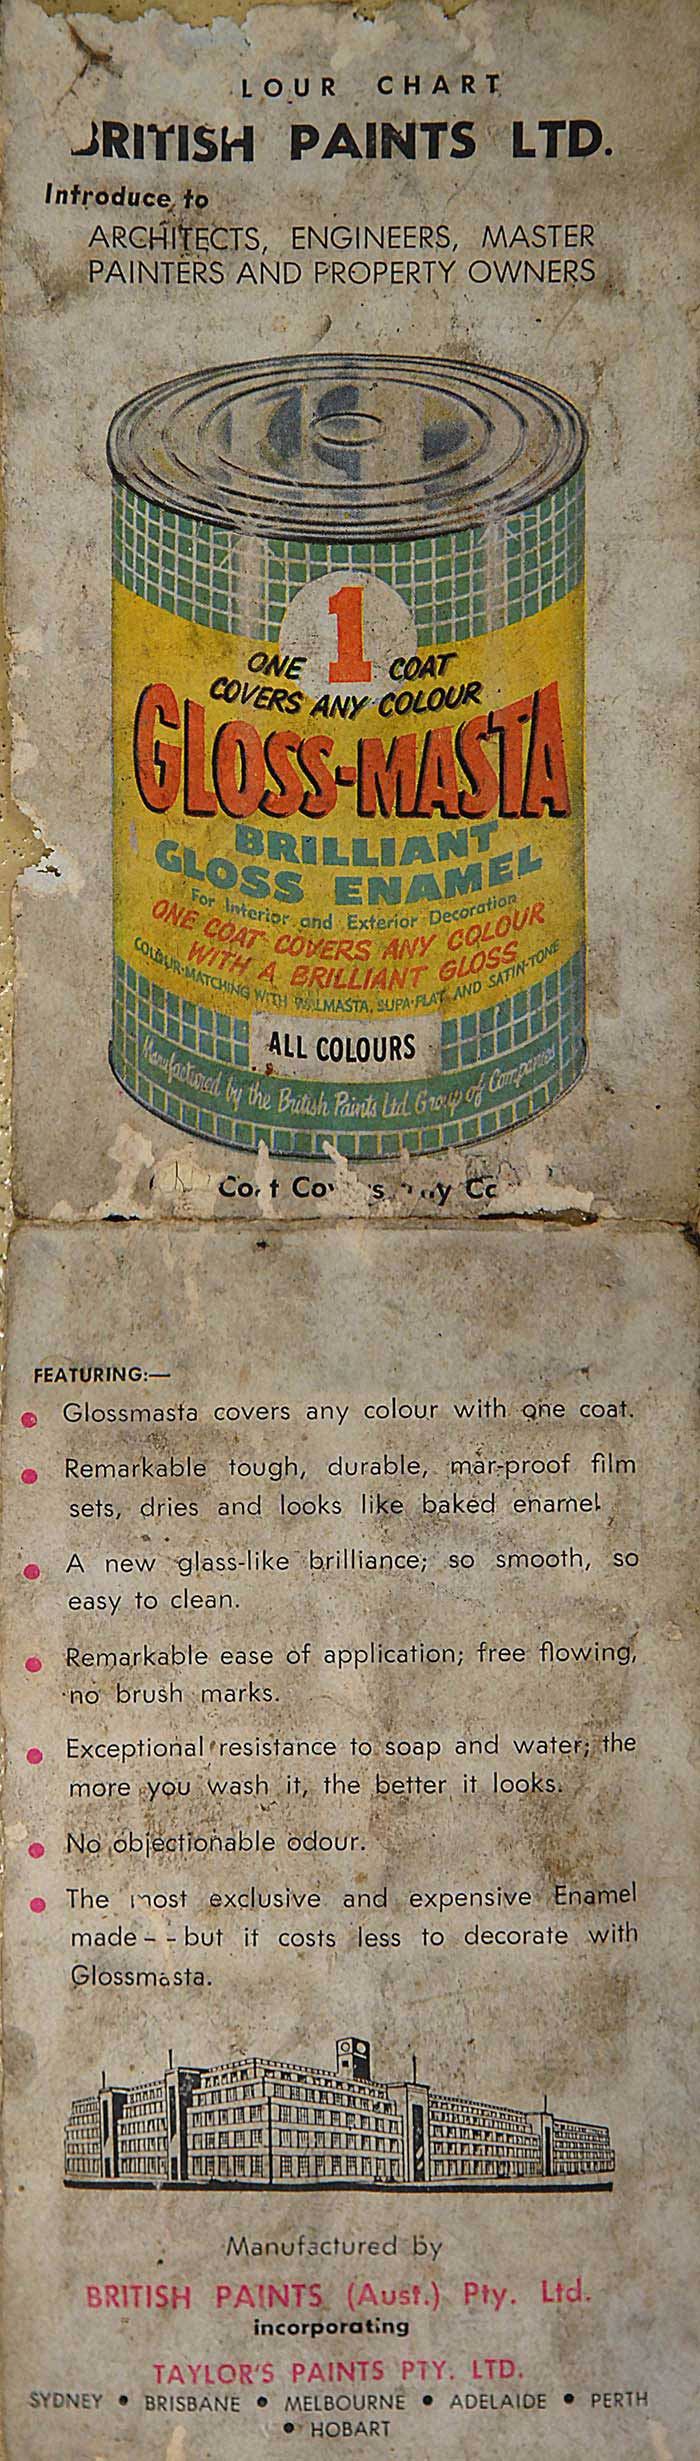 Despite it's intended use for house painting, full gloss enamel paints were sold for re-painting bicycles. The attraction here, one small tin of paint wa cheap and it could coat an entire bike frame if applied with care.